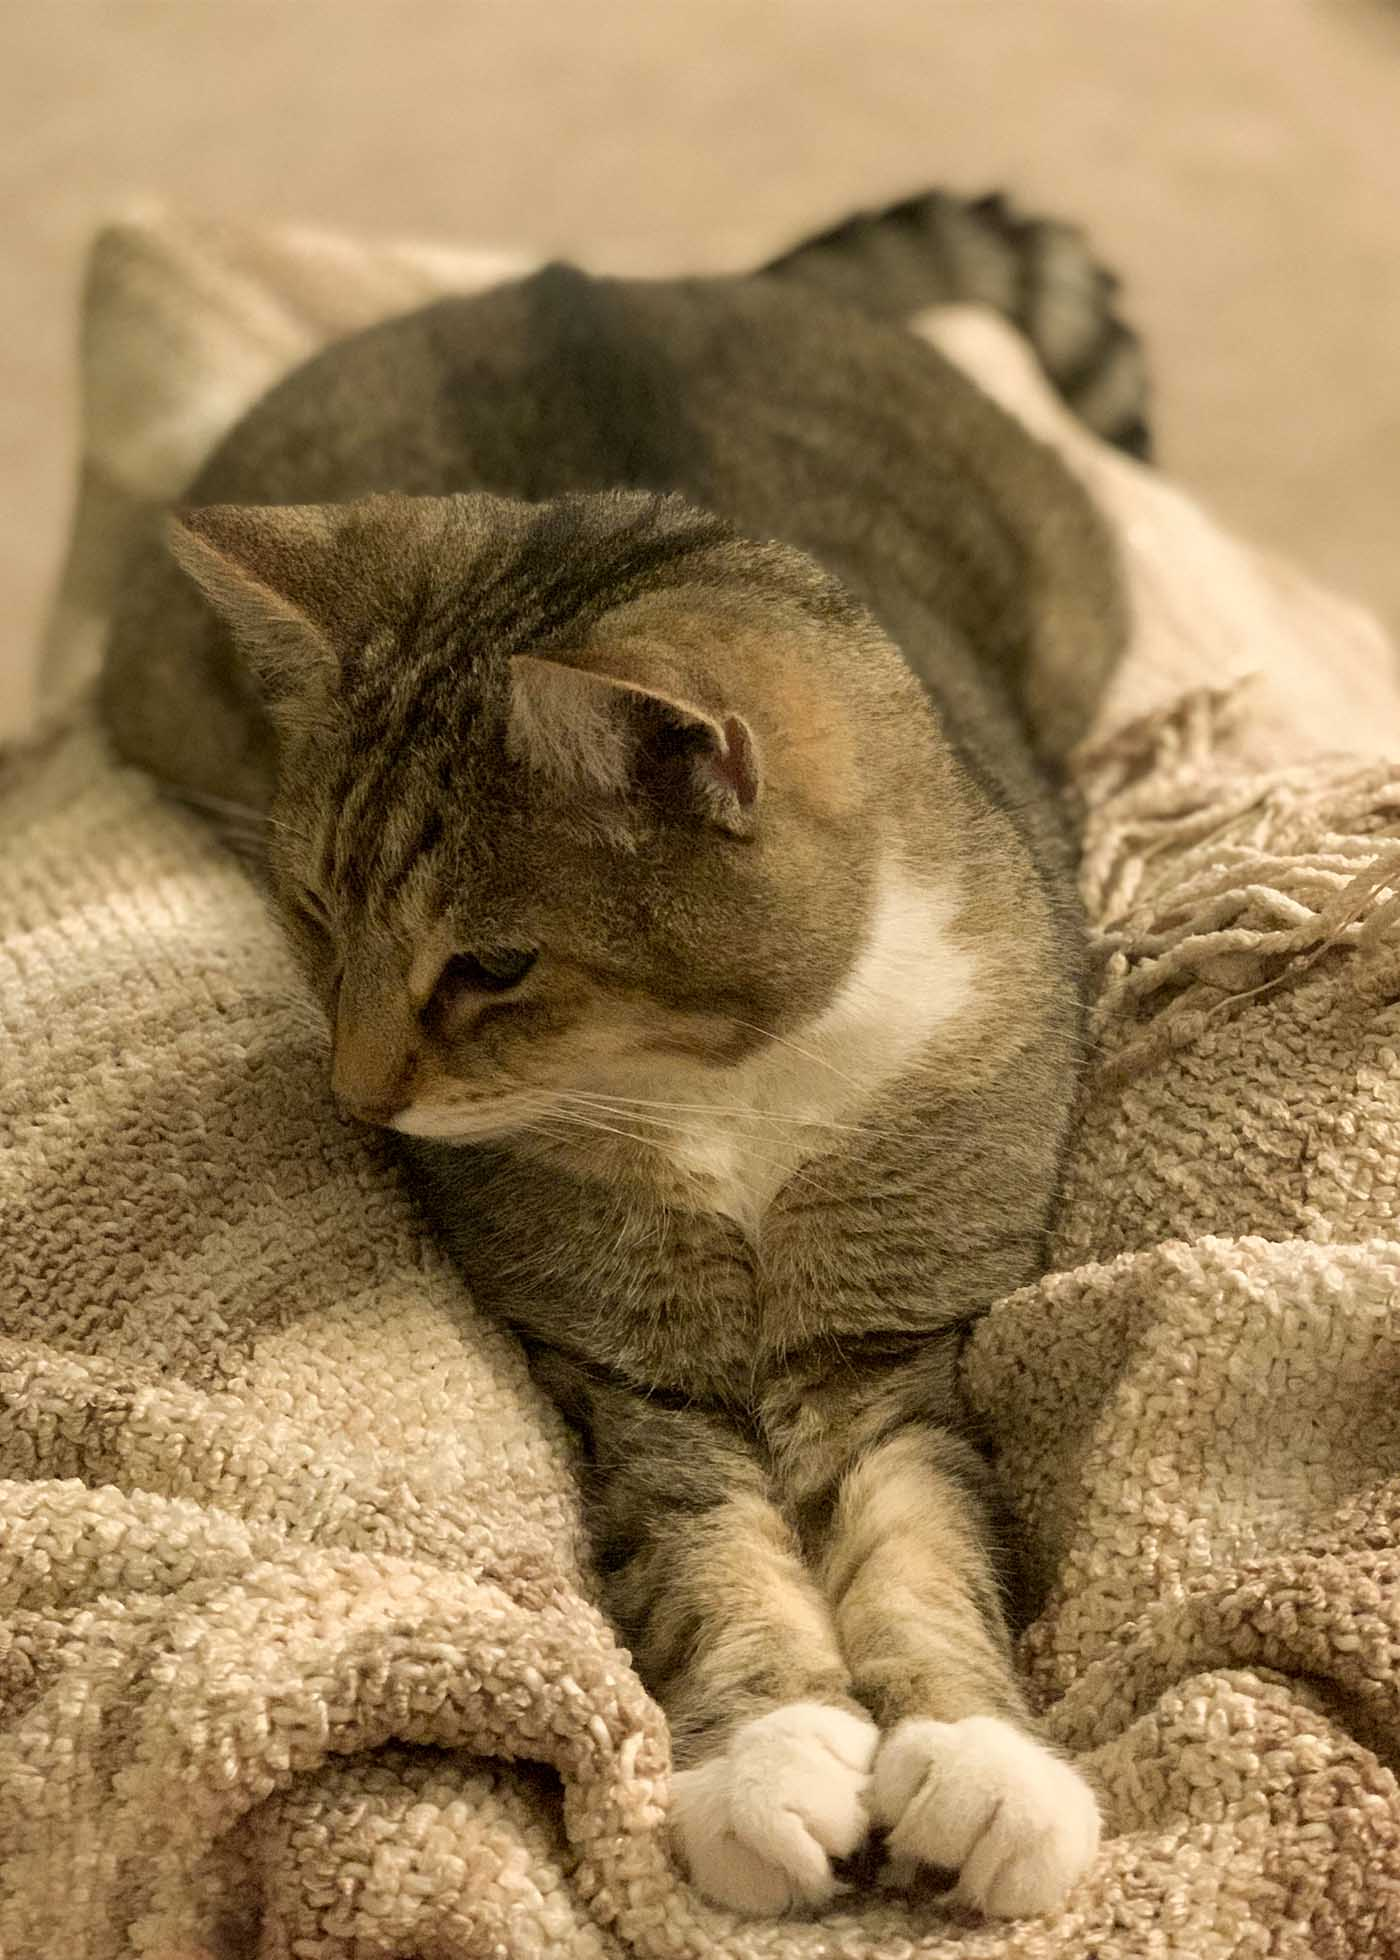 A brown tabby cat with a white bib and paws stretched out on a brown blanket on a lap.